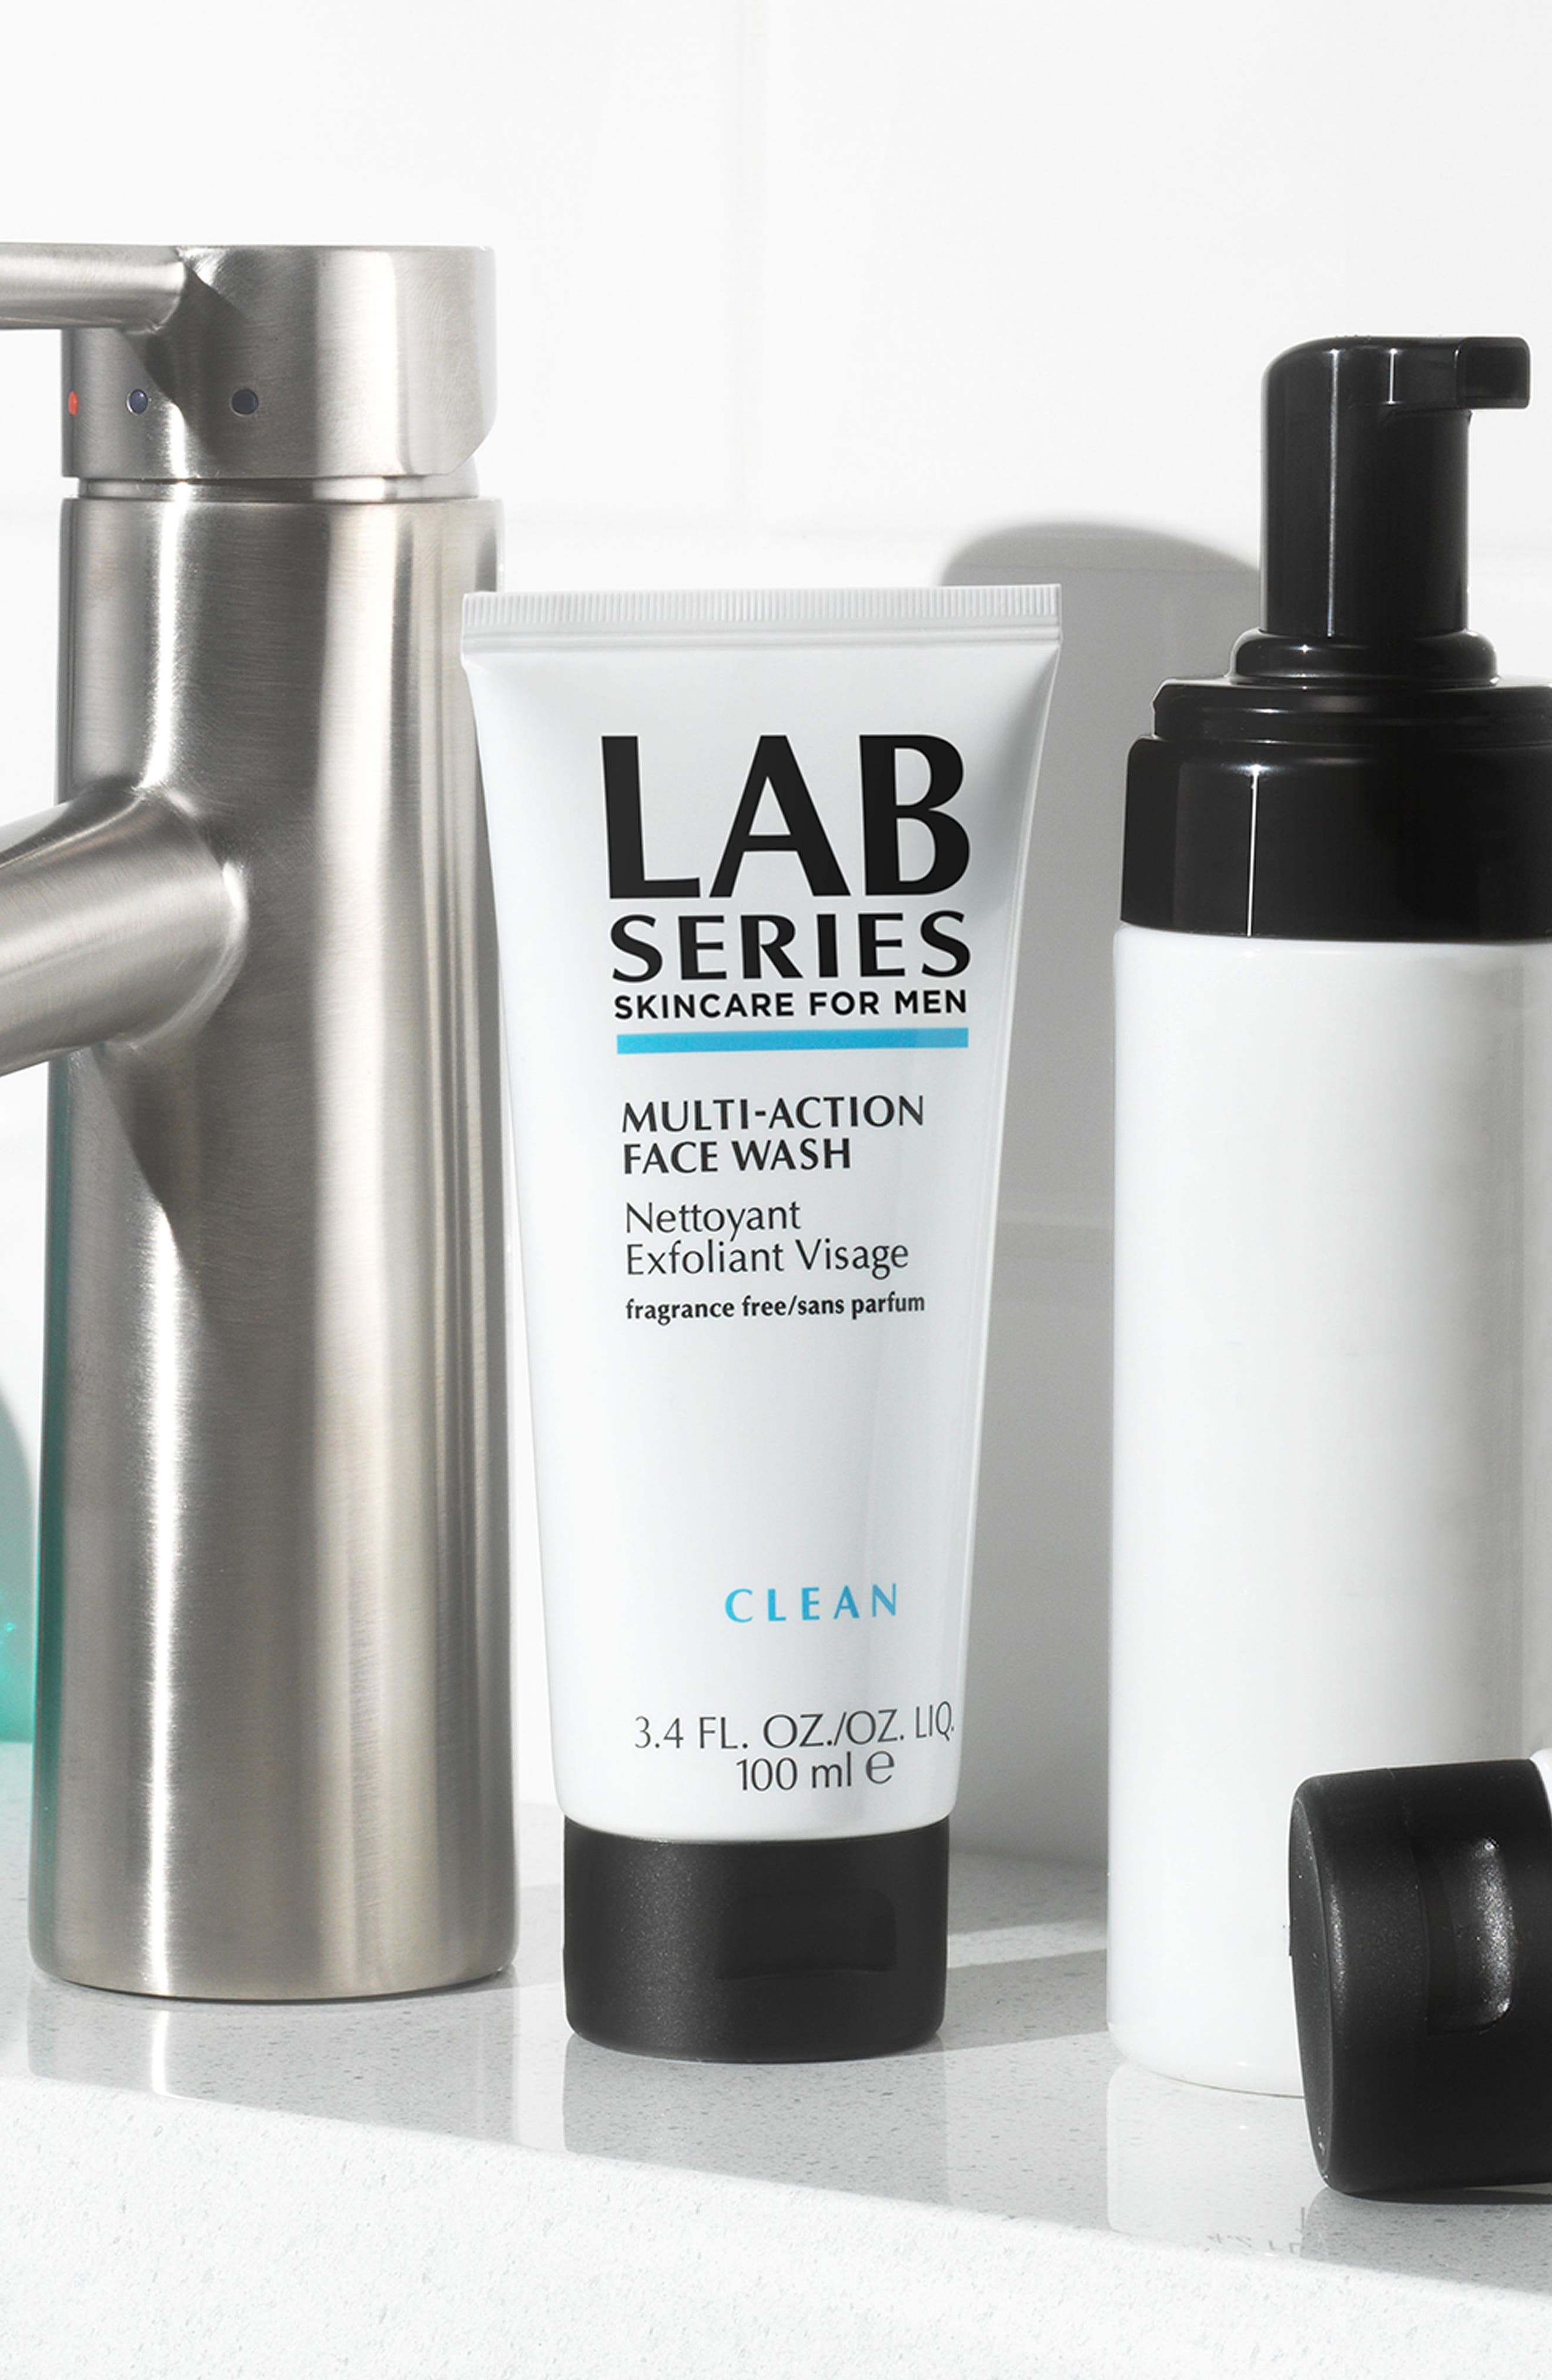 LAB SERIES SKINCARE FOR MEN, Multi-Action Face Wash, Alternate thumbnail 4, color, NO COLOR